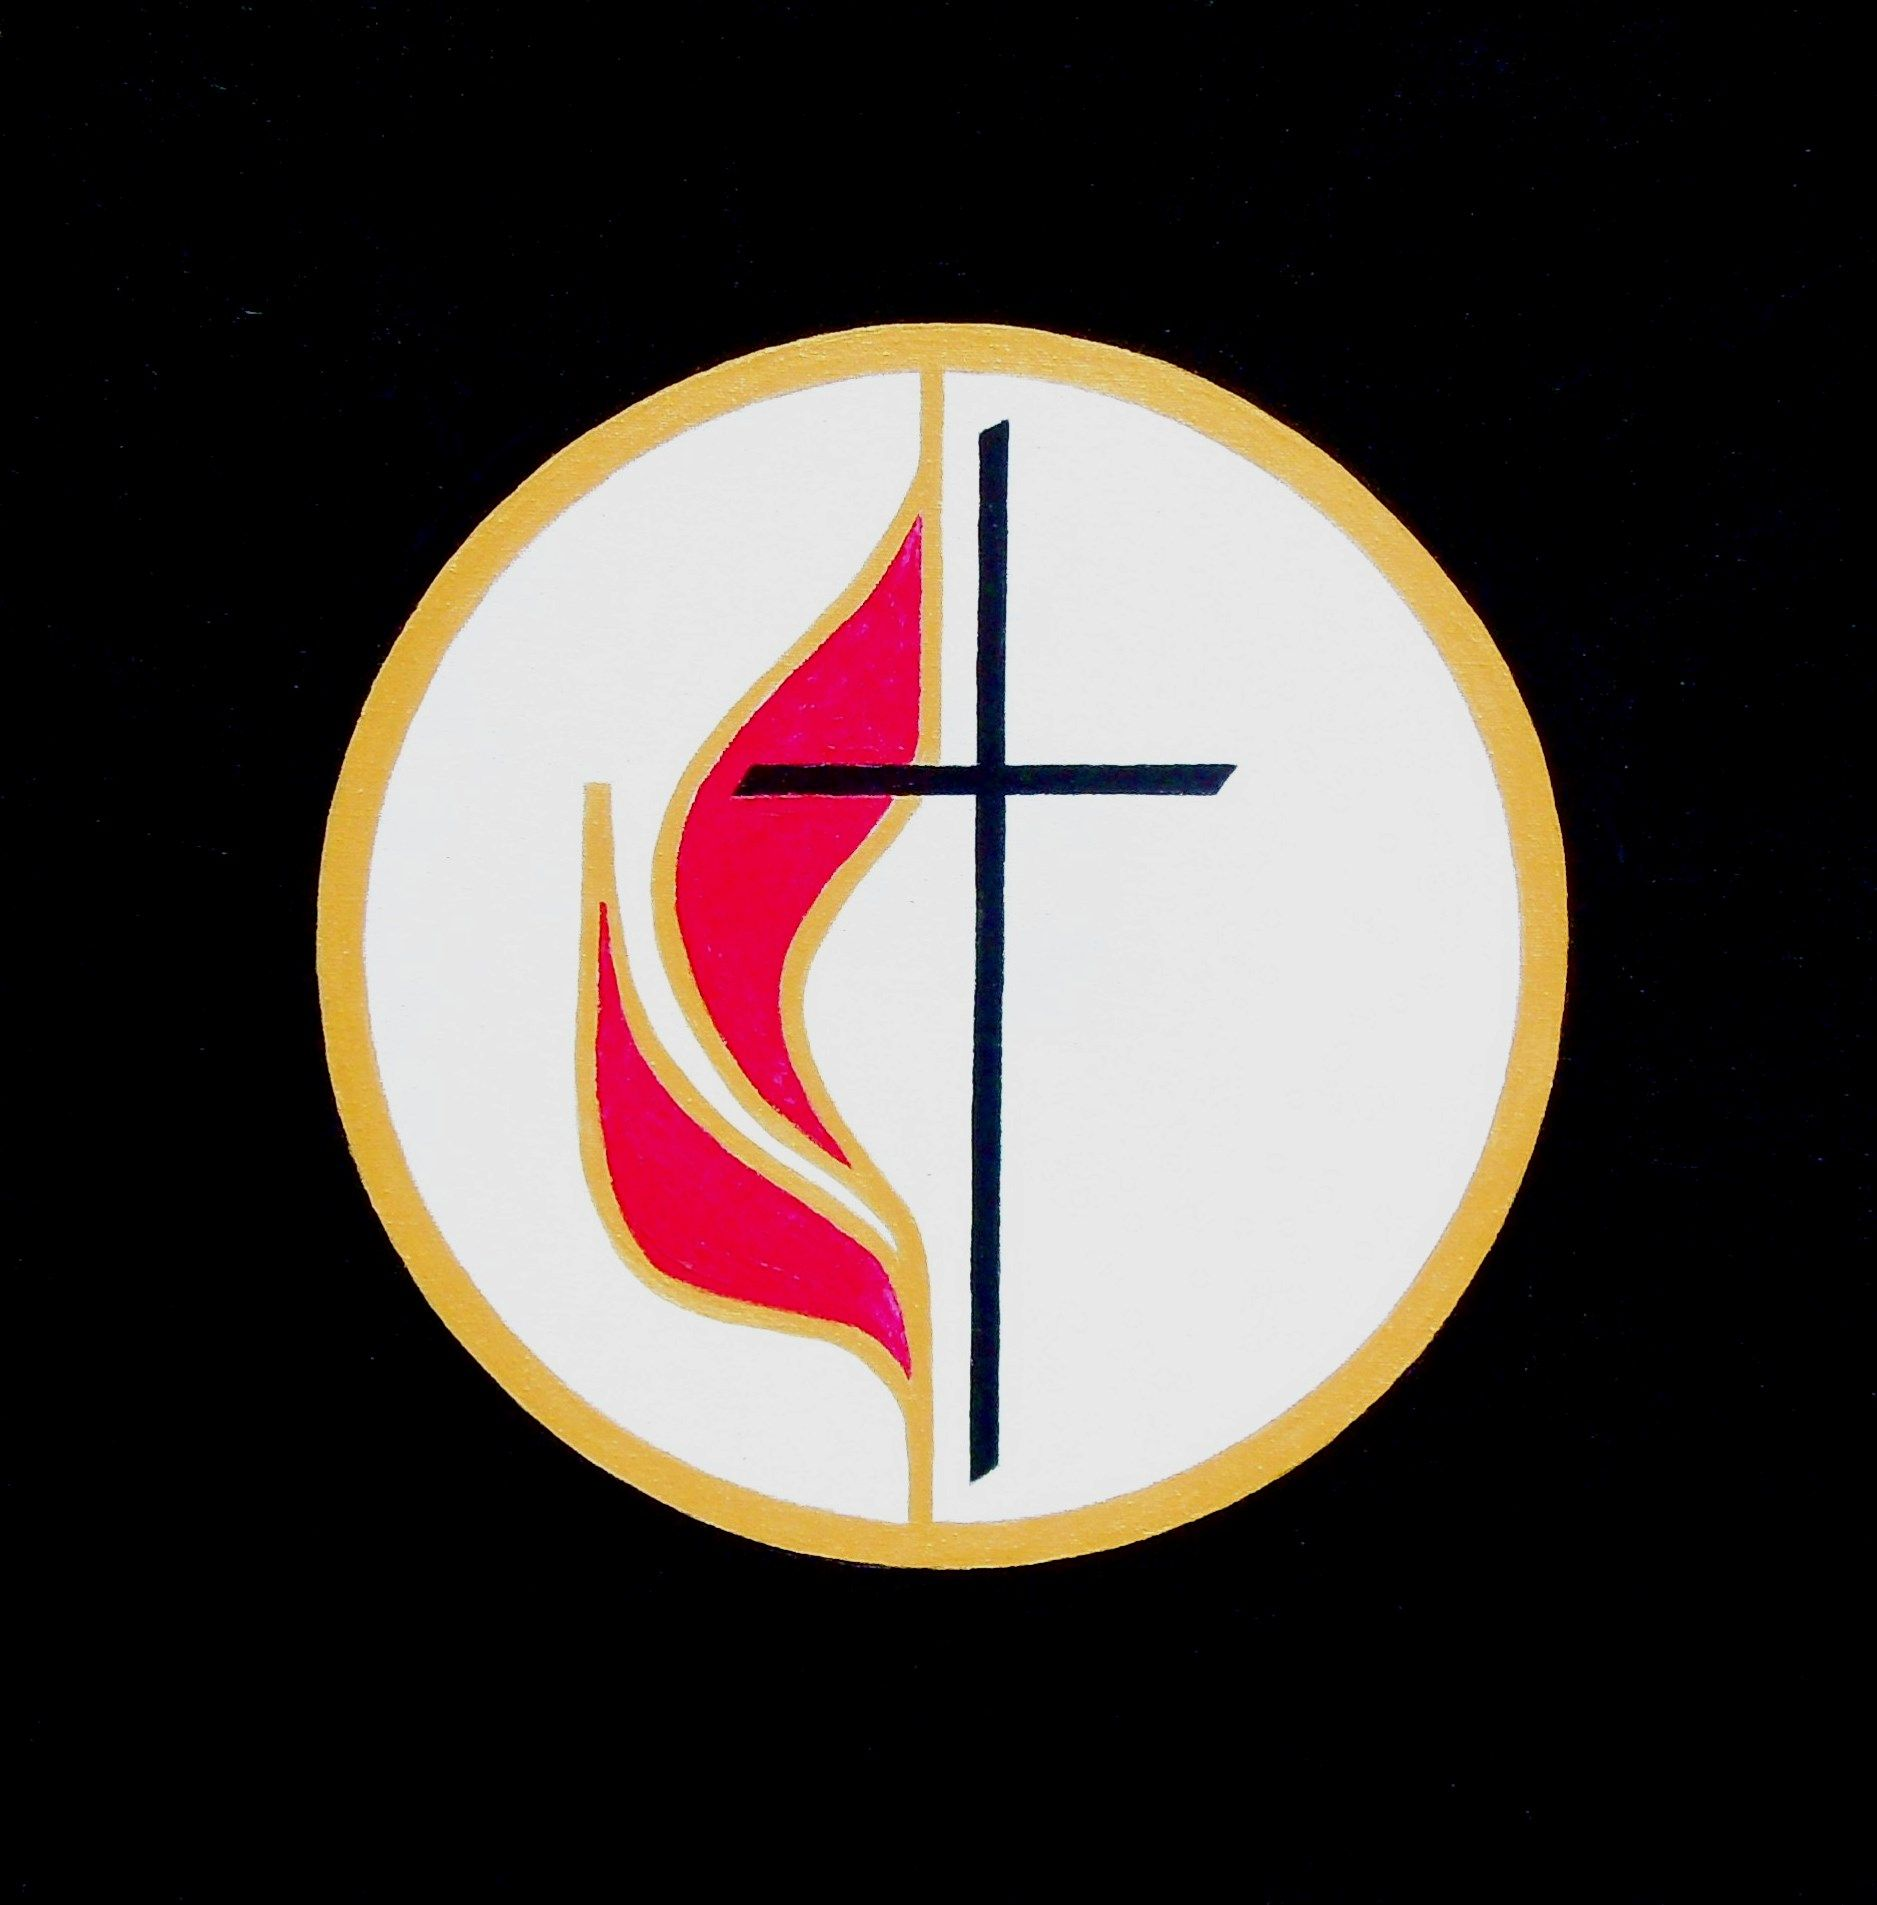 1968 Logo for The United Methodist Church by Michael James